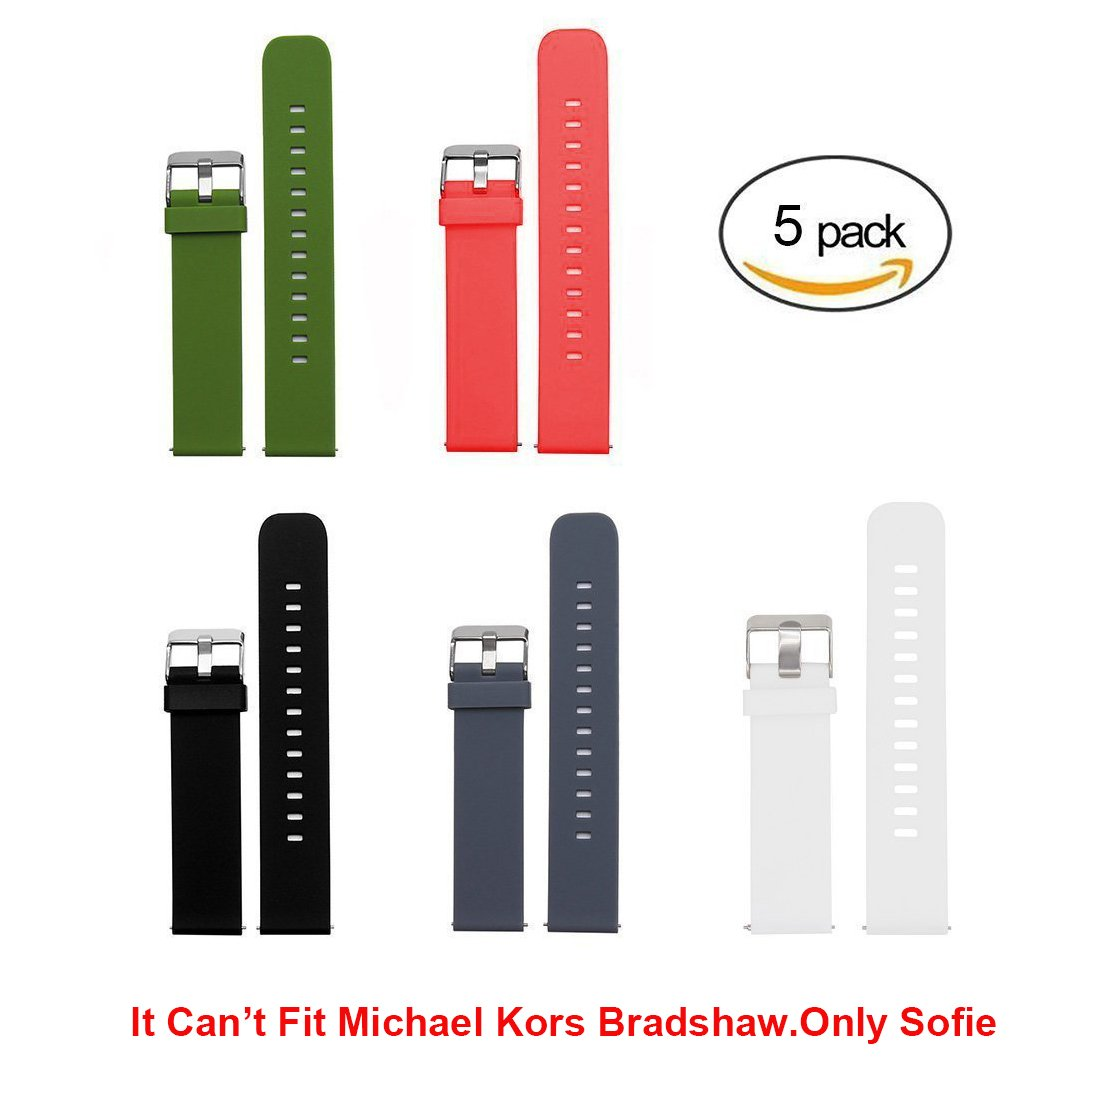 Lamshaw Smartwatch Band for Michael Kors Access Sofie, Quick Release Classic Silicone Replacement Band for MK Access Sofie Smartwatch (5 pack) by Lamshaw